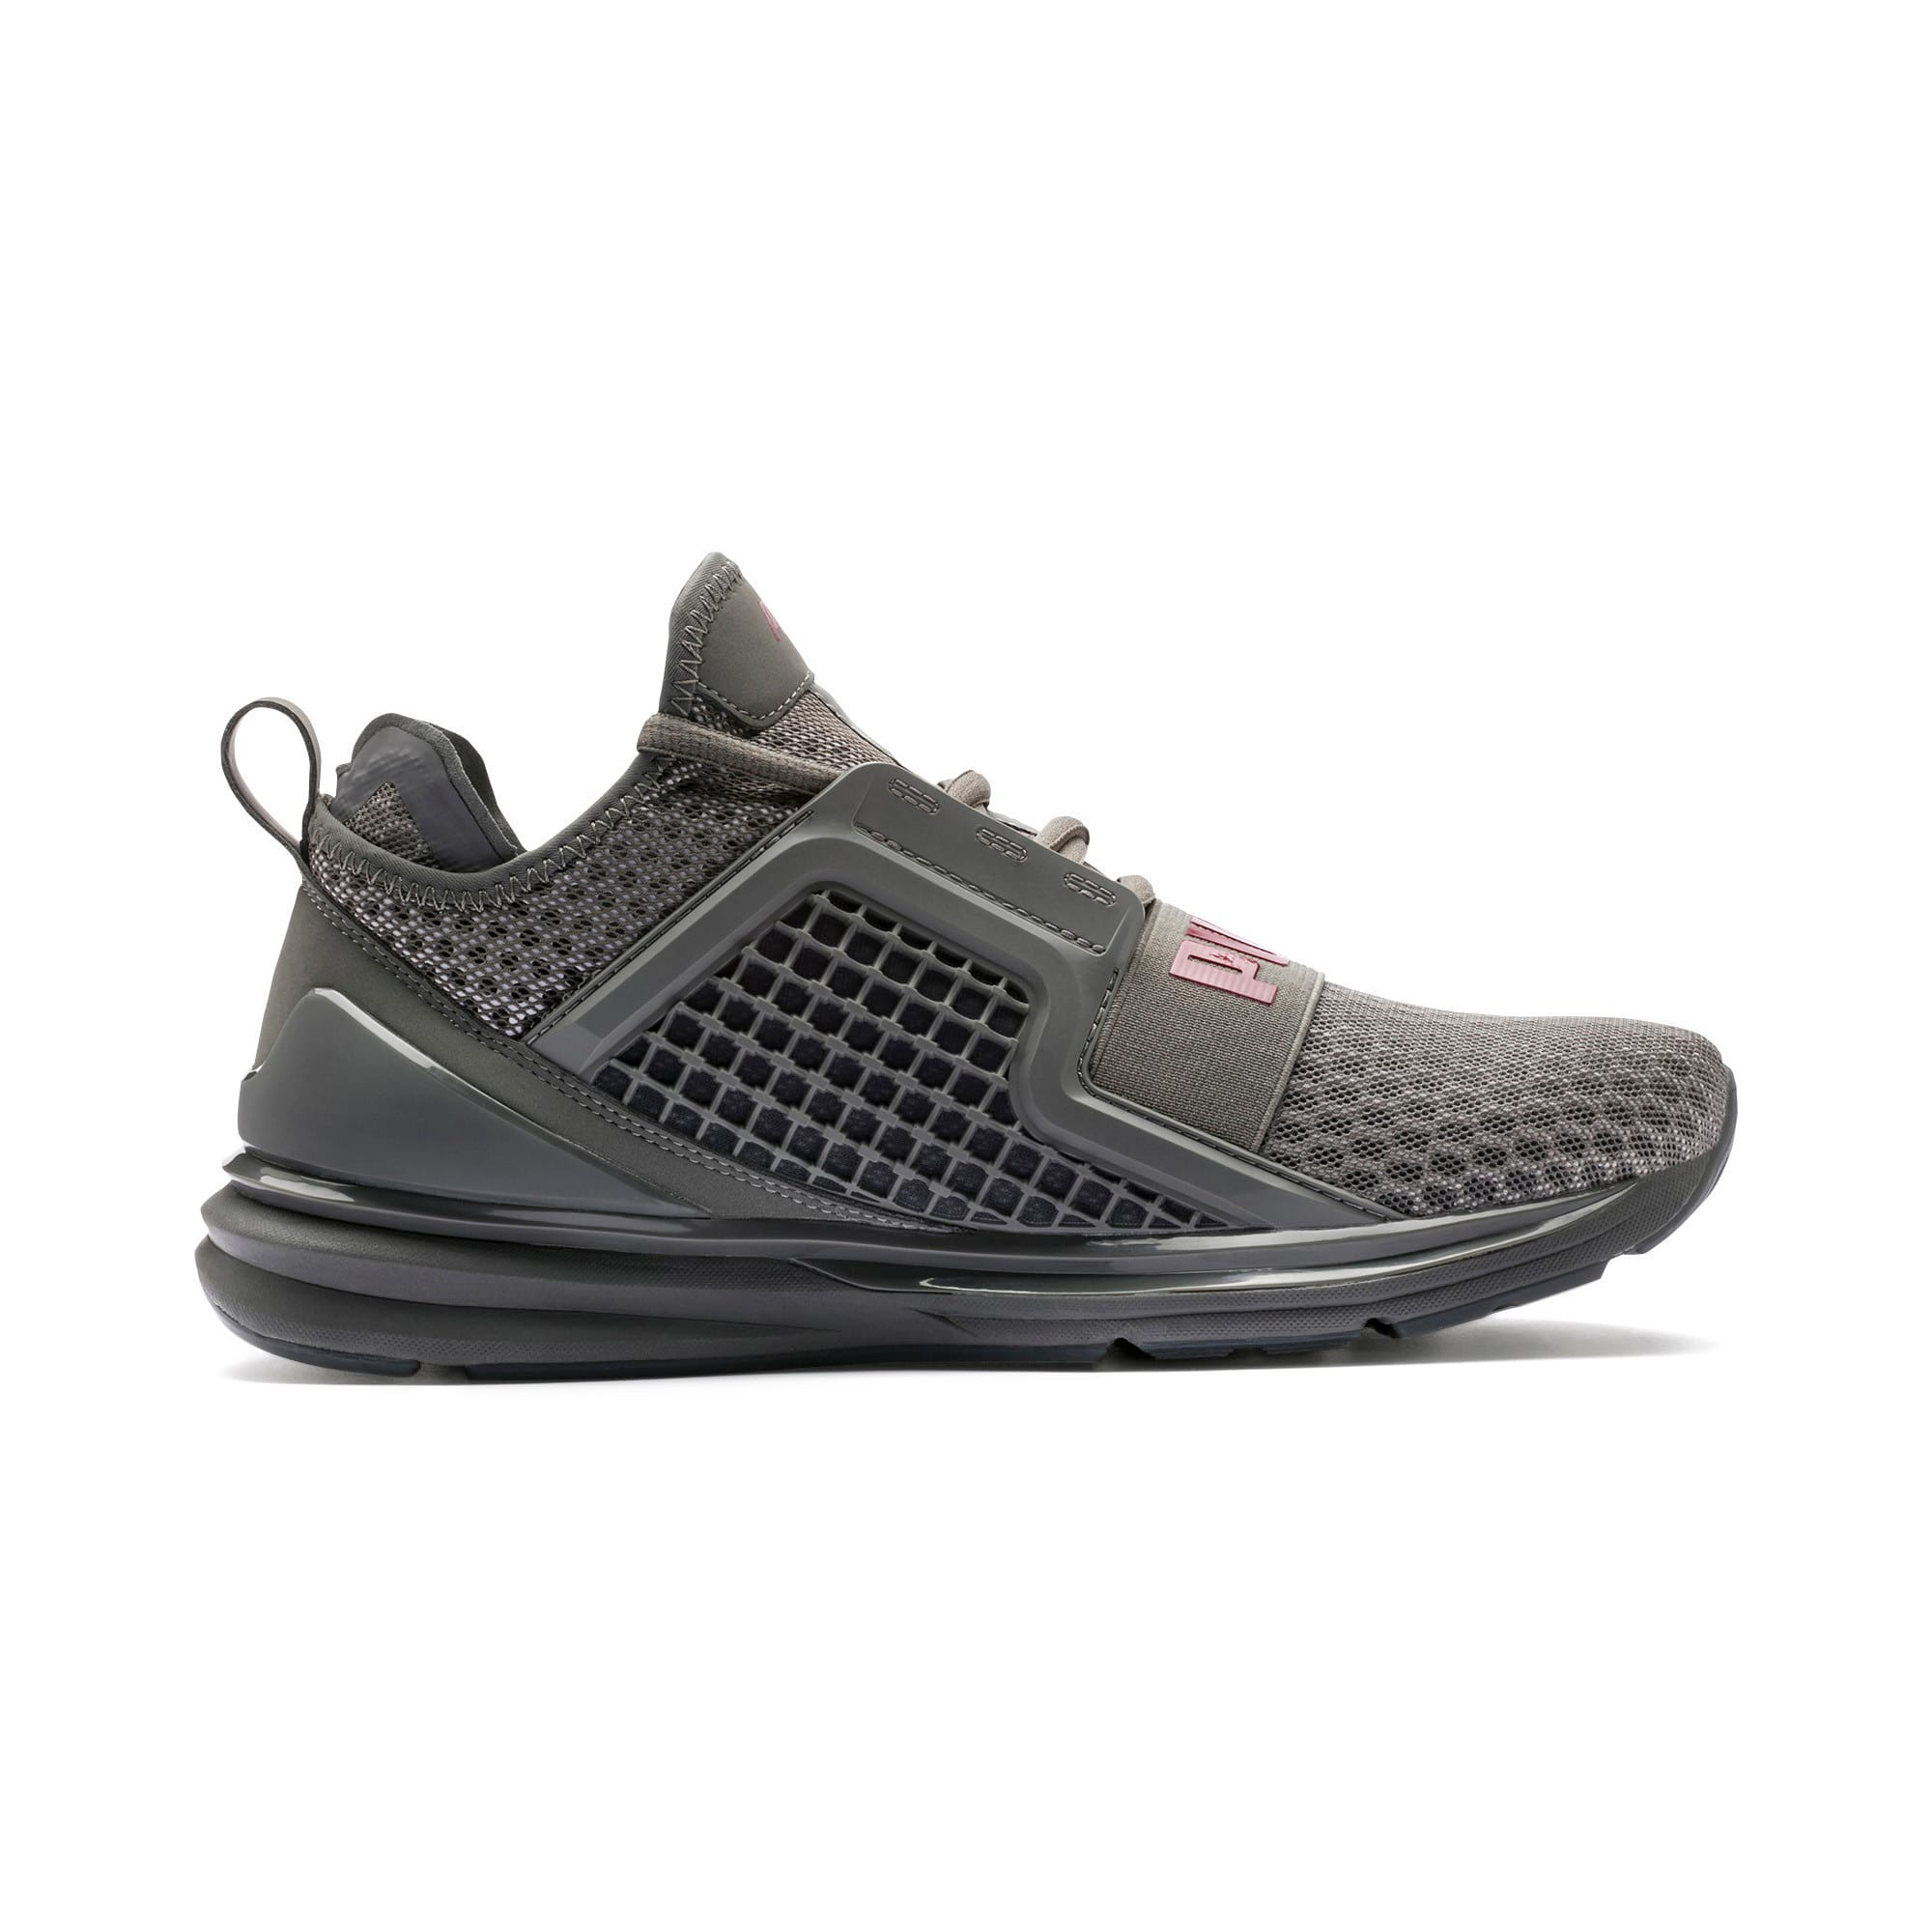 Thumbnail 5 of IGNITE Limitless Men's Running Shoes, CASTLEROCK-Rhubarb, medium-IND